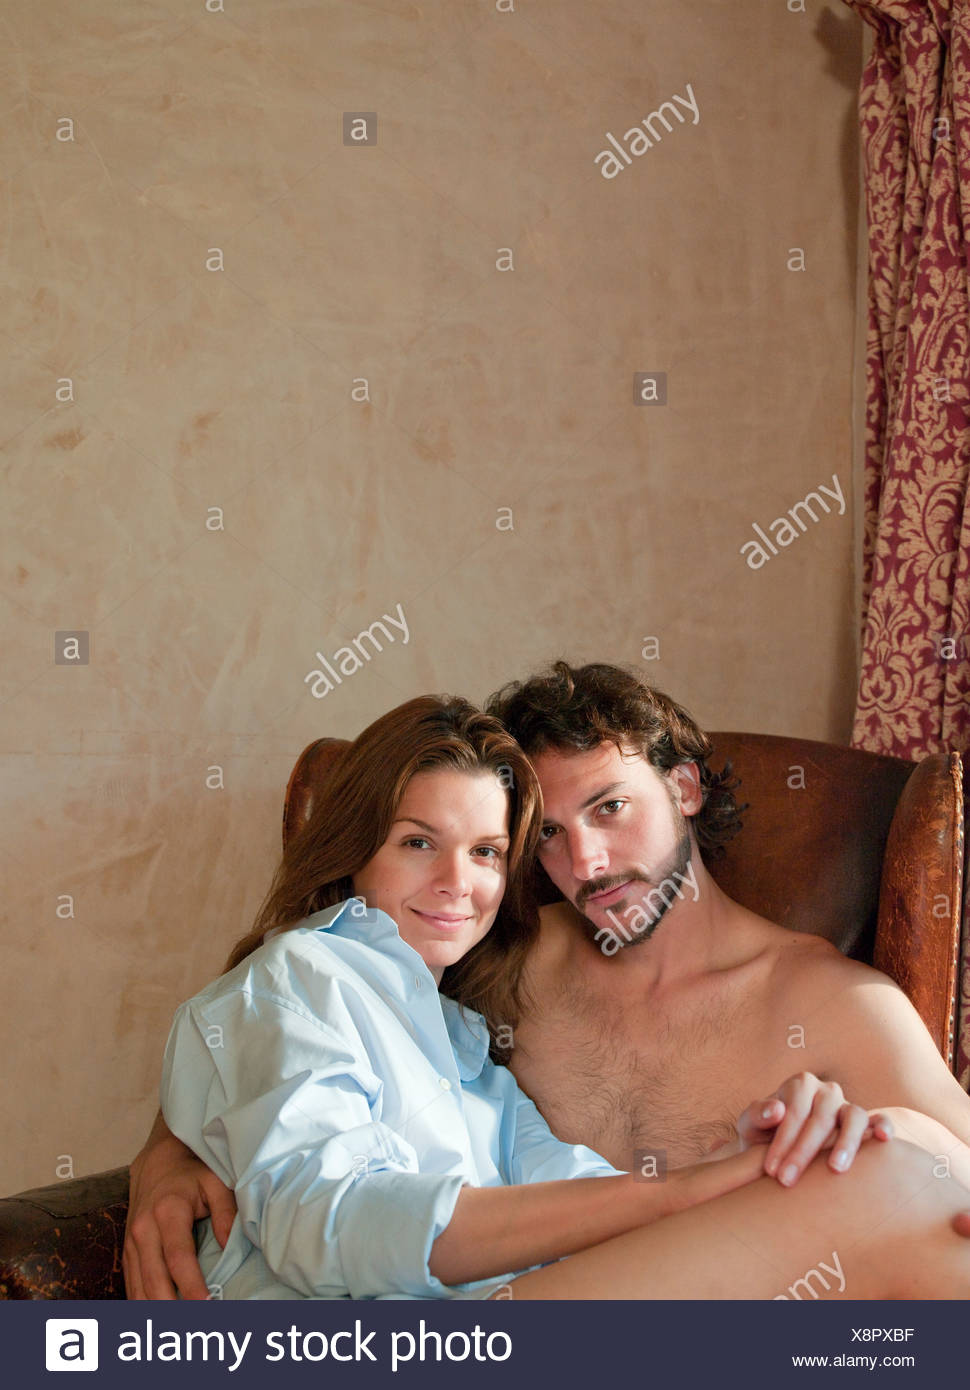 couple in old chair - Stock Image